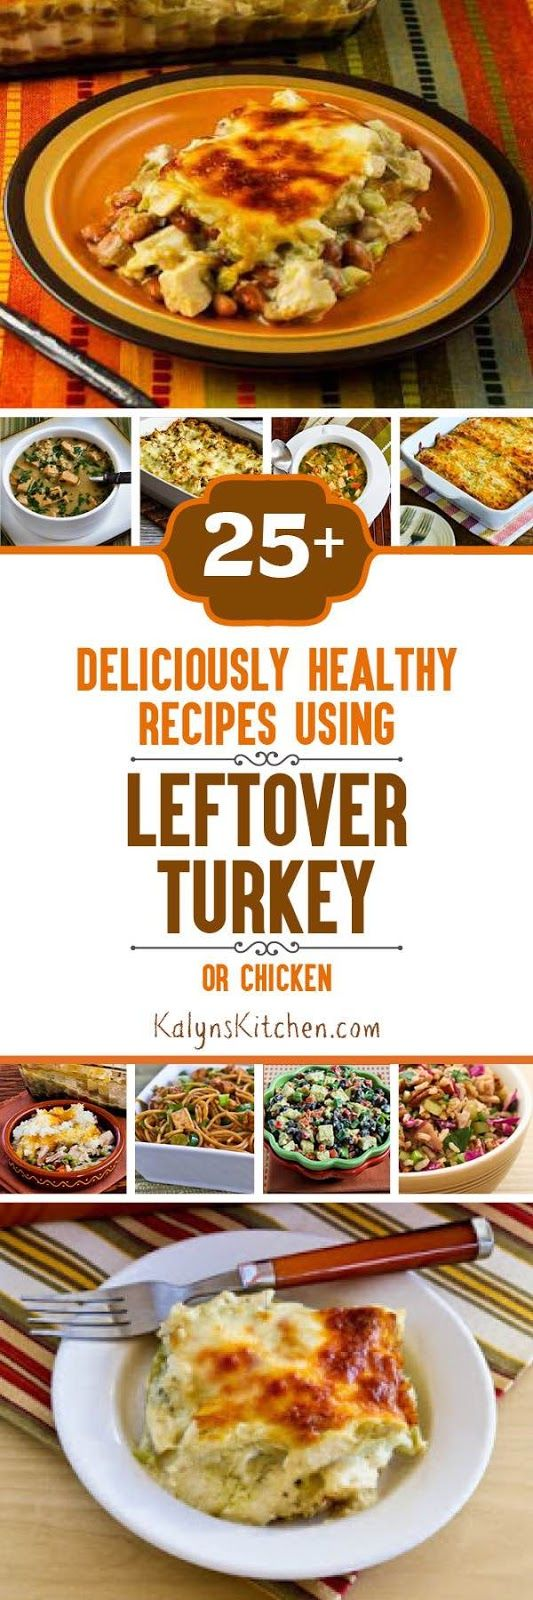 Here are Twenty-Five+ Deliciously Healthy Recipes Using Leftover Turkey (or chicken); PIN NOW so you'll have this whenever you're lucky enough to have leftover chicken or turkey and need a tasty idea. [KalynsKitchen.com]